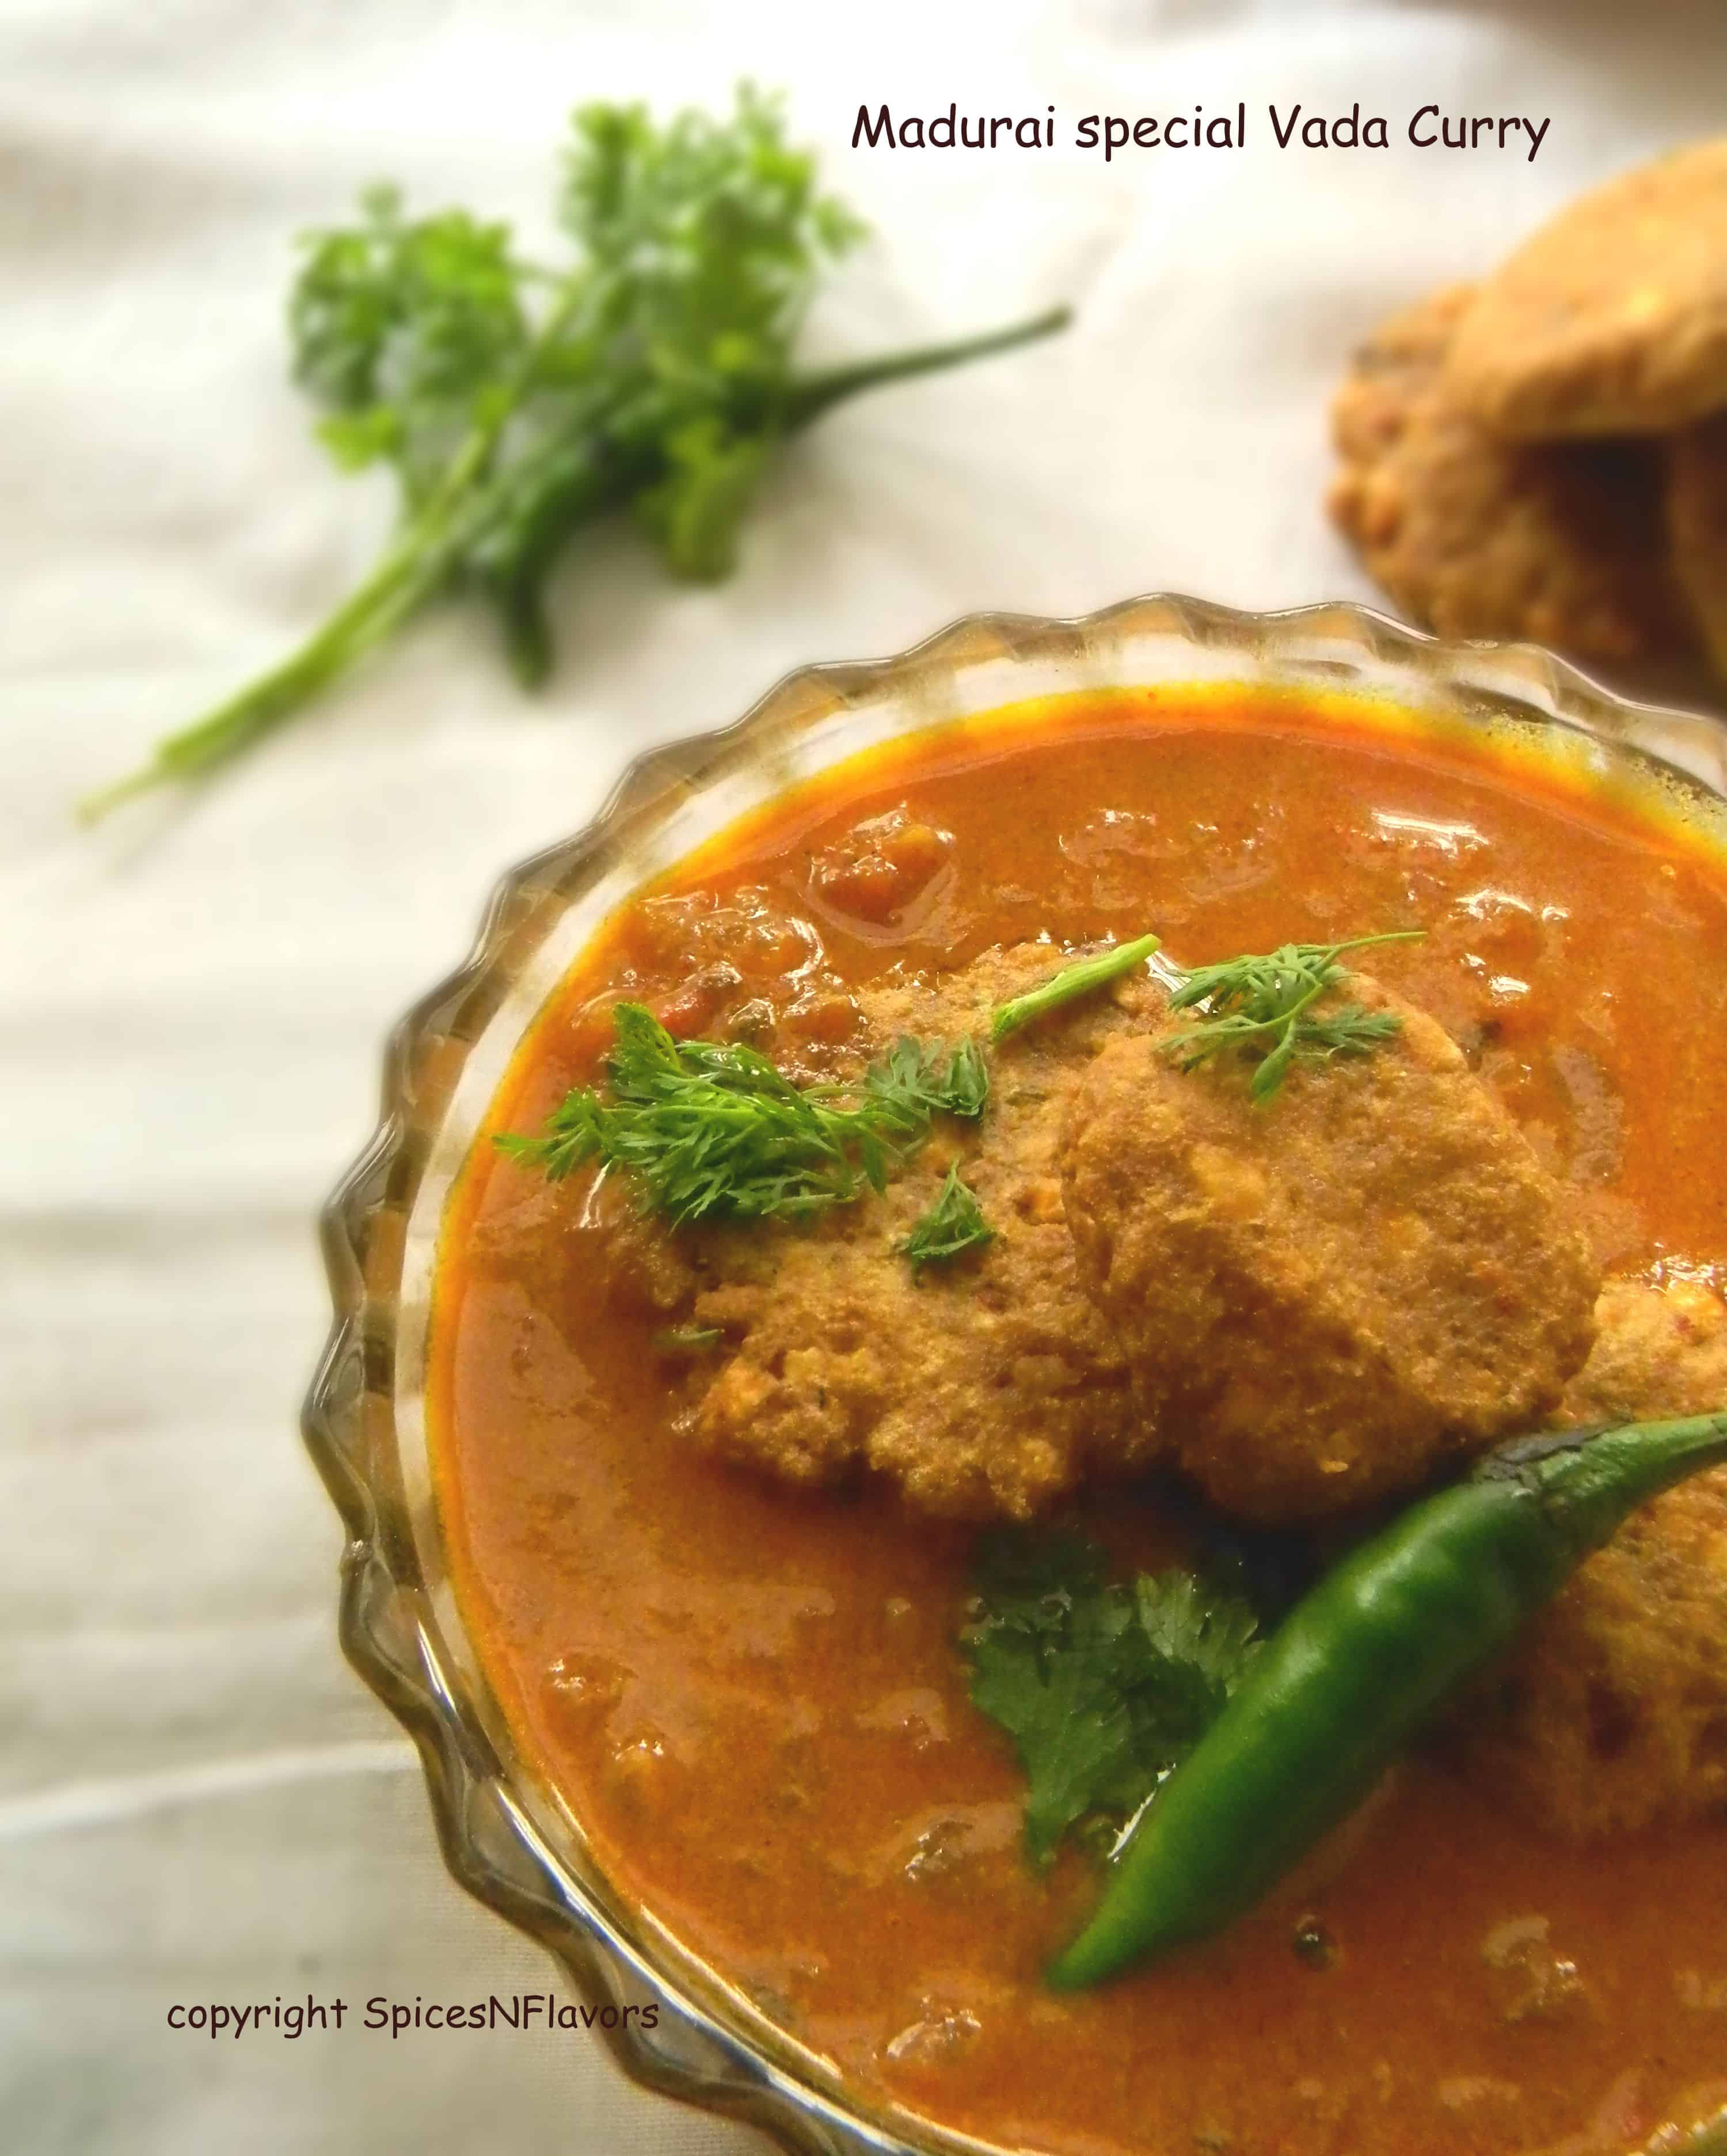 spicy-side-dish-idli-dosa-madurai-vada-curry